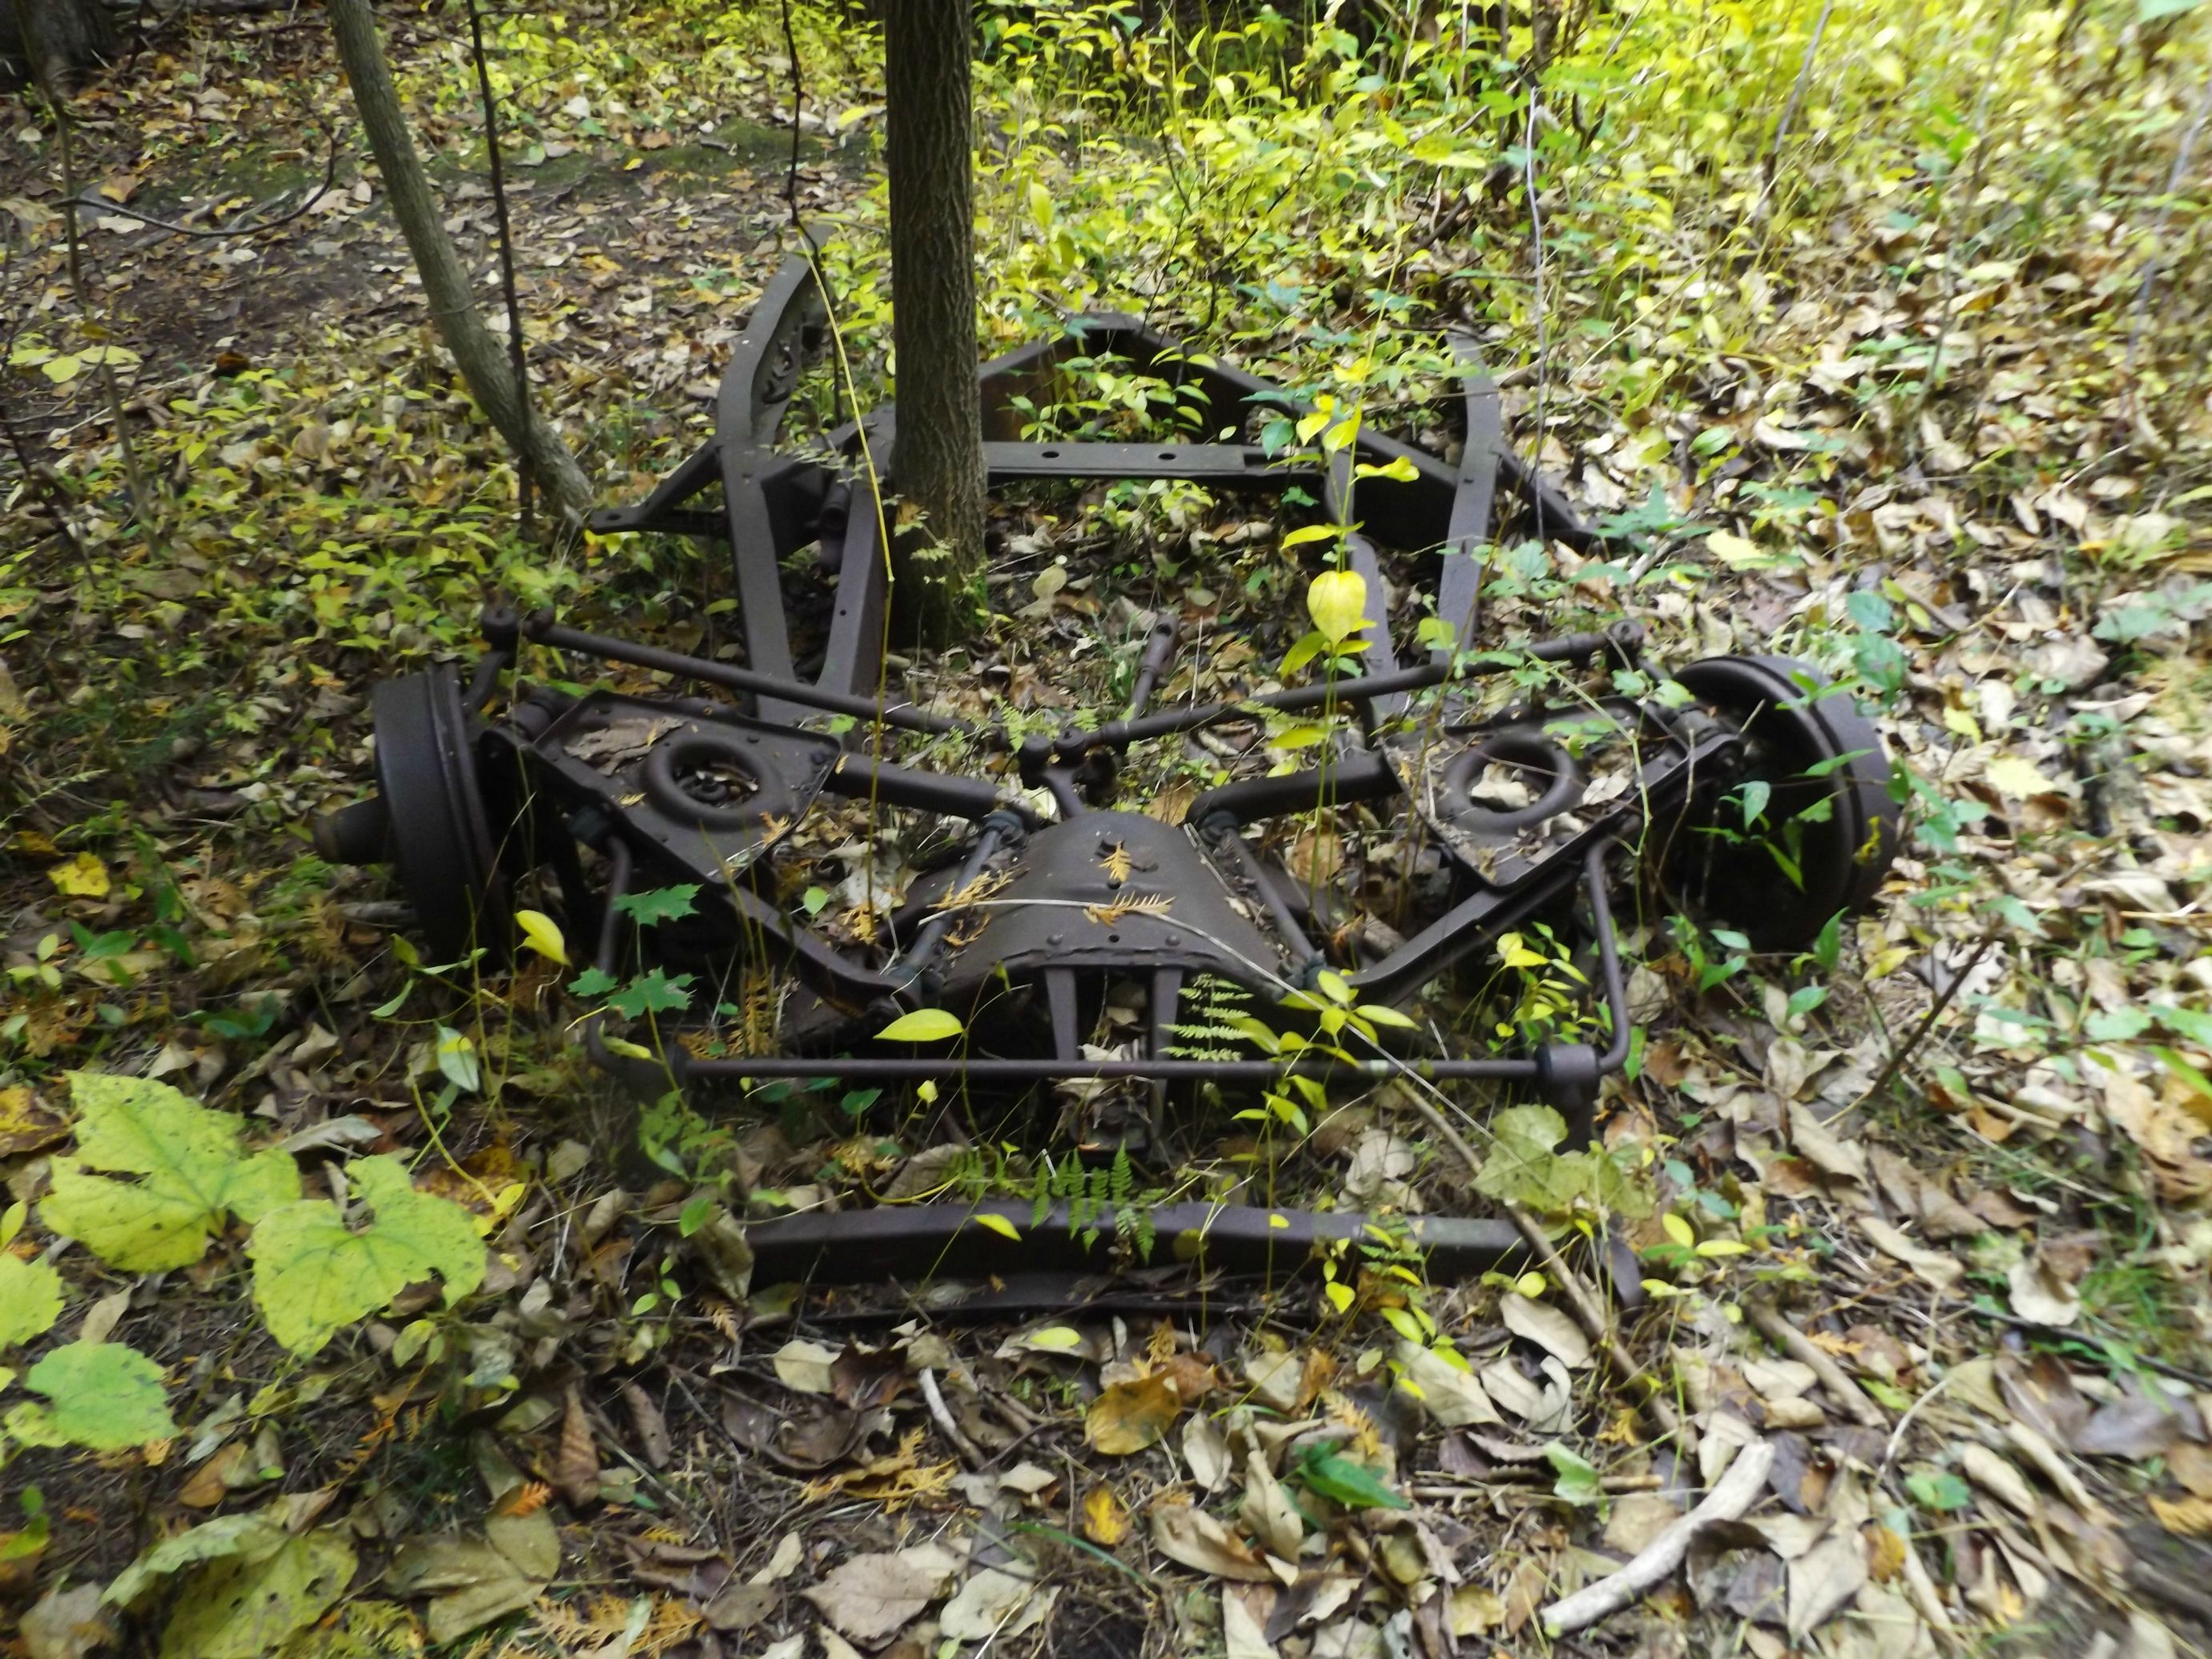 Old car remains in the woods Toronto Canada [2764x2073] [OC]